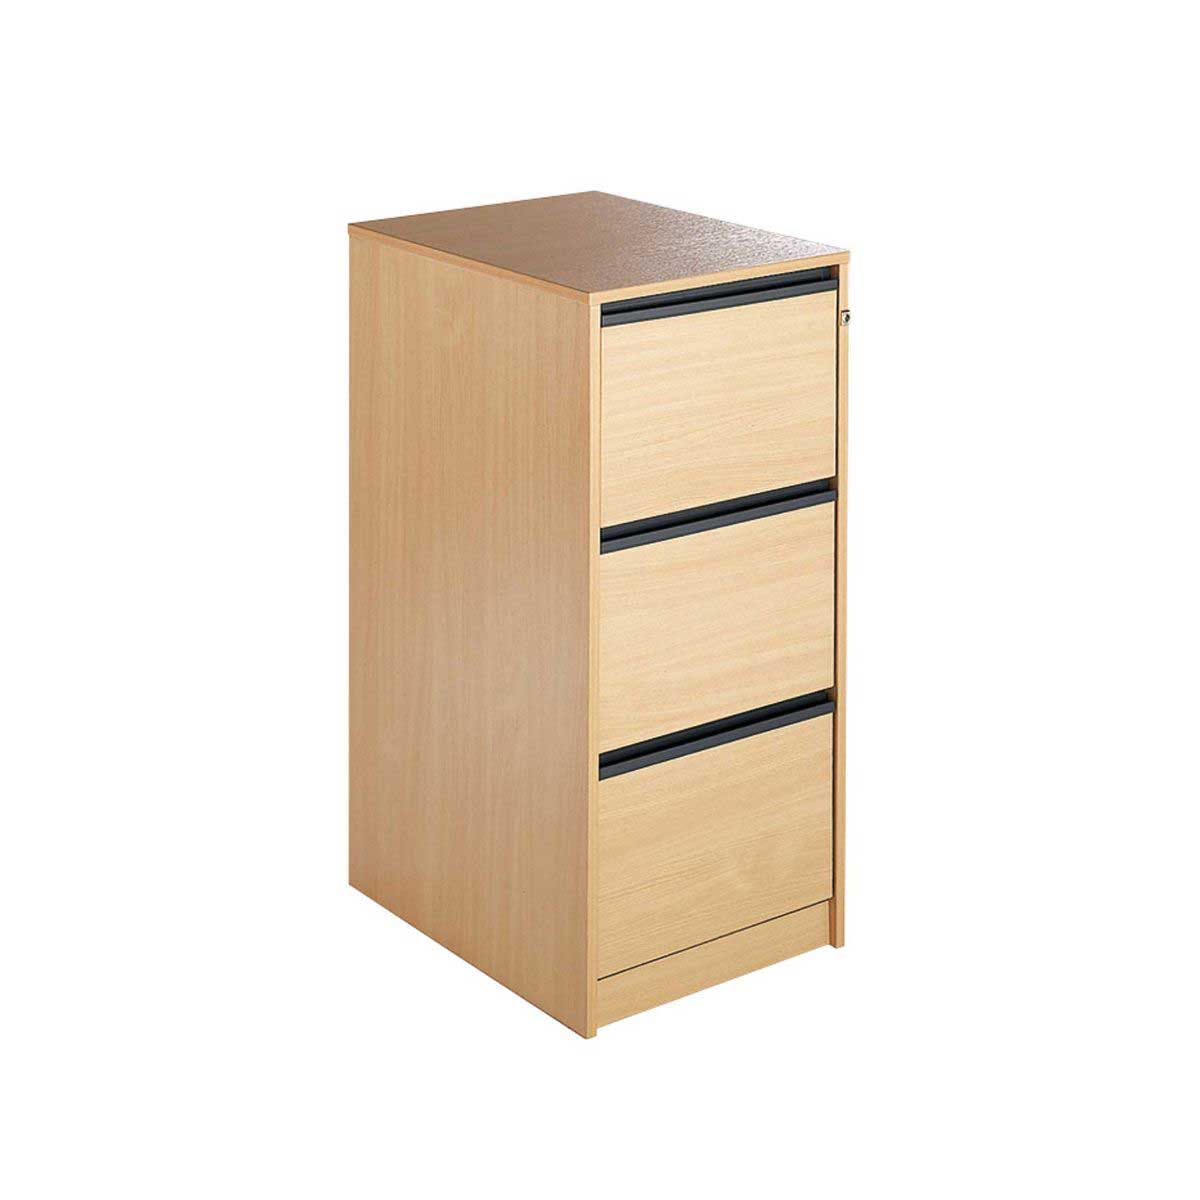 Maestro 3 Drawer Filing Cabinet, Beech Effect